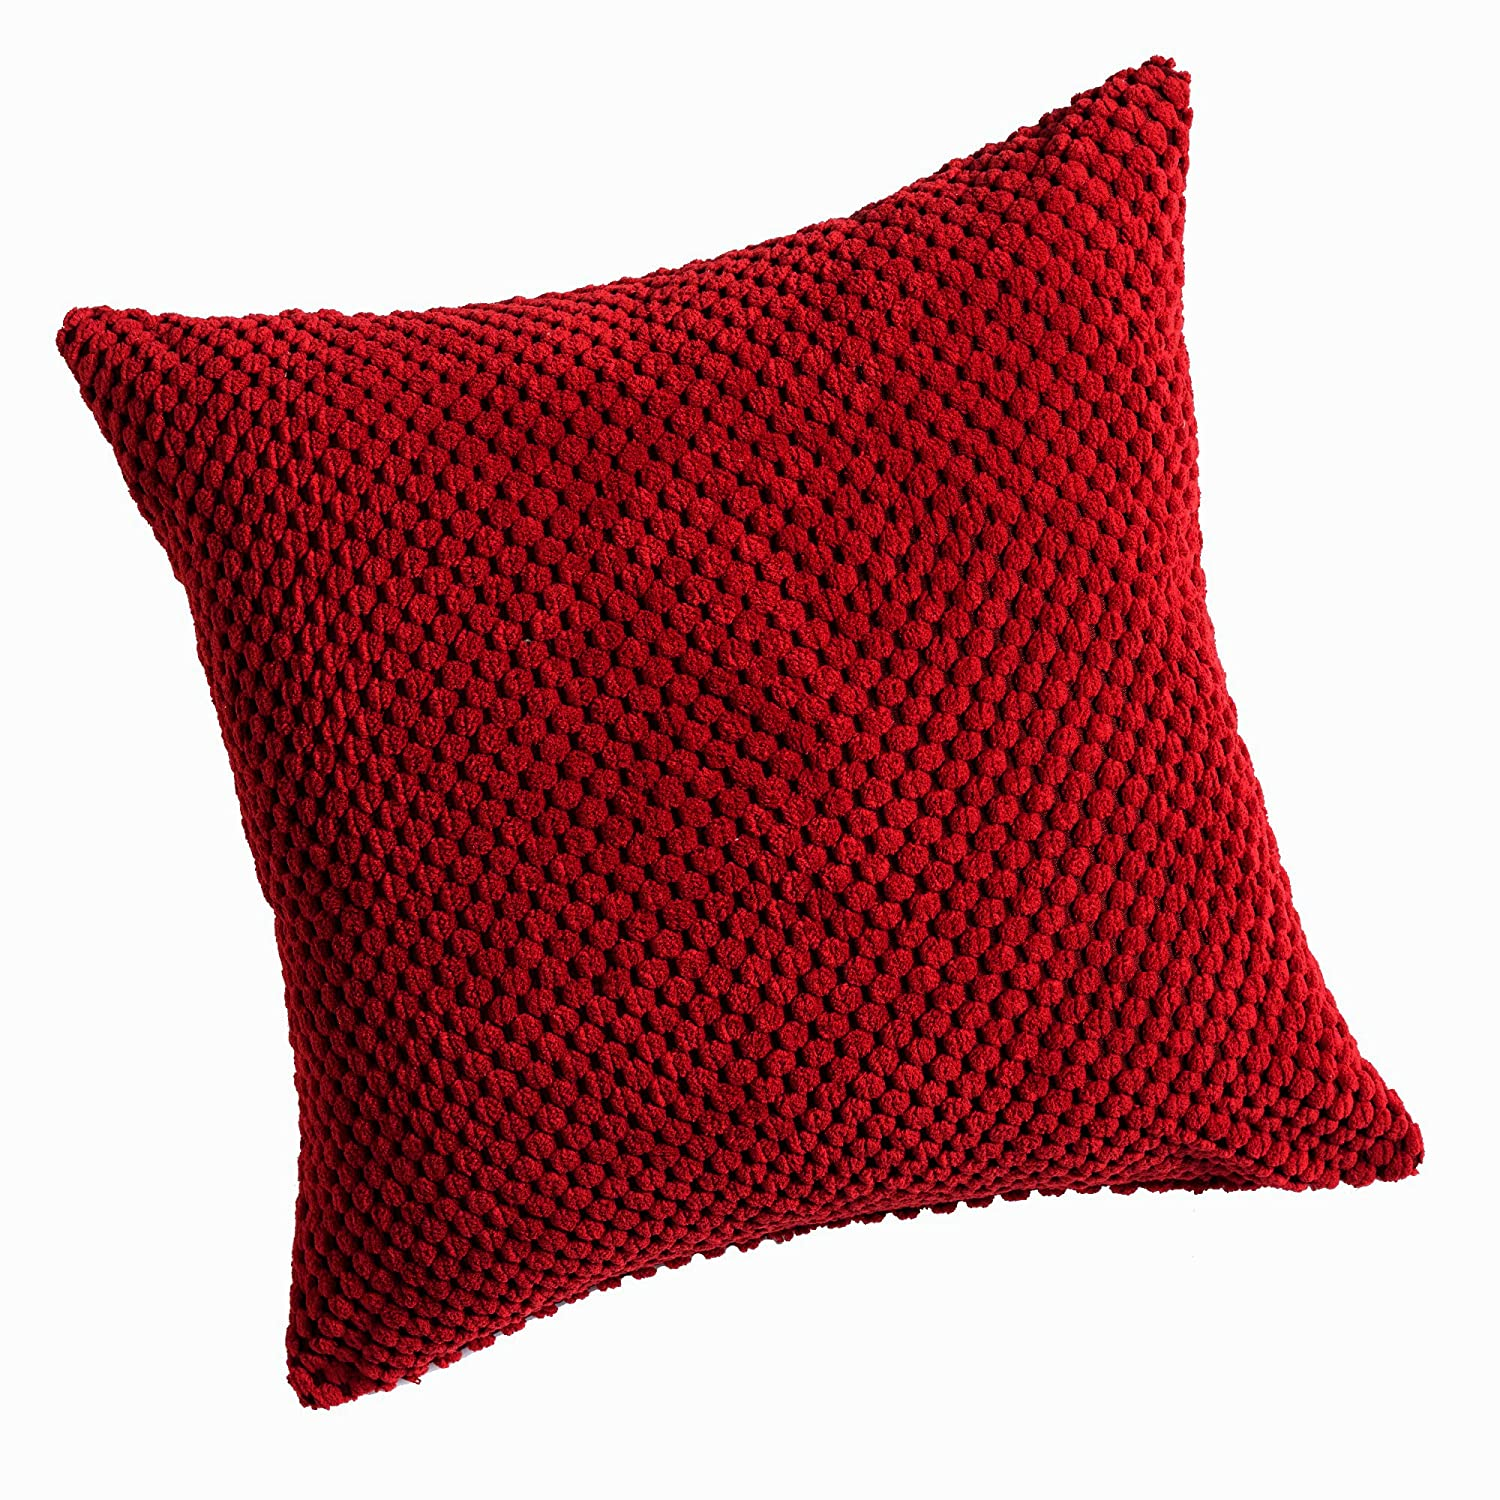 pillow dble by double decker red travel go htm